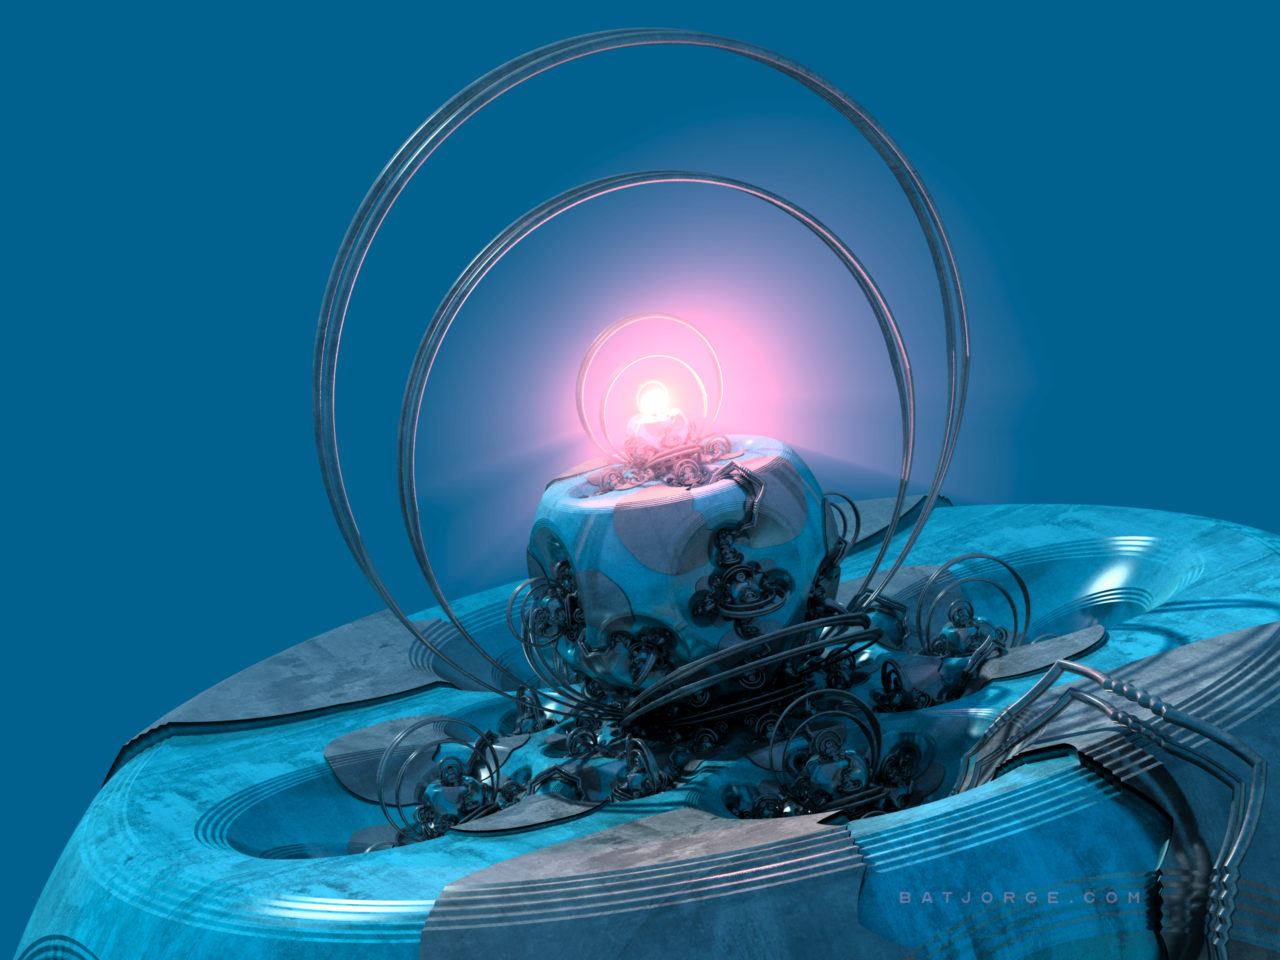 3d fractal. blue. depth of field. classic orb with glowing light at center